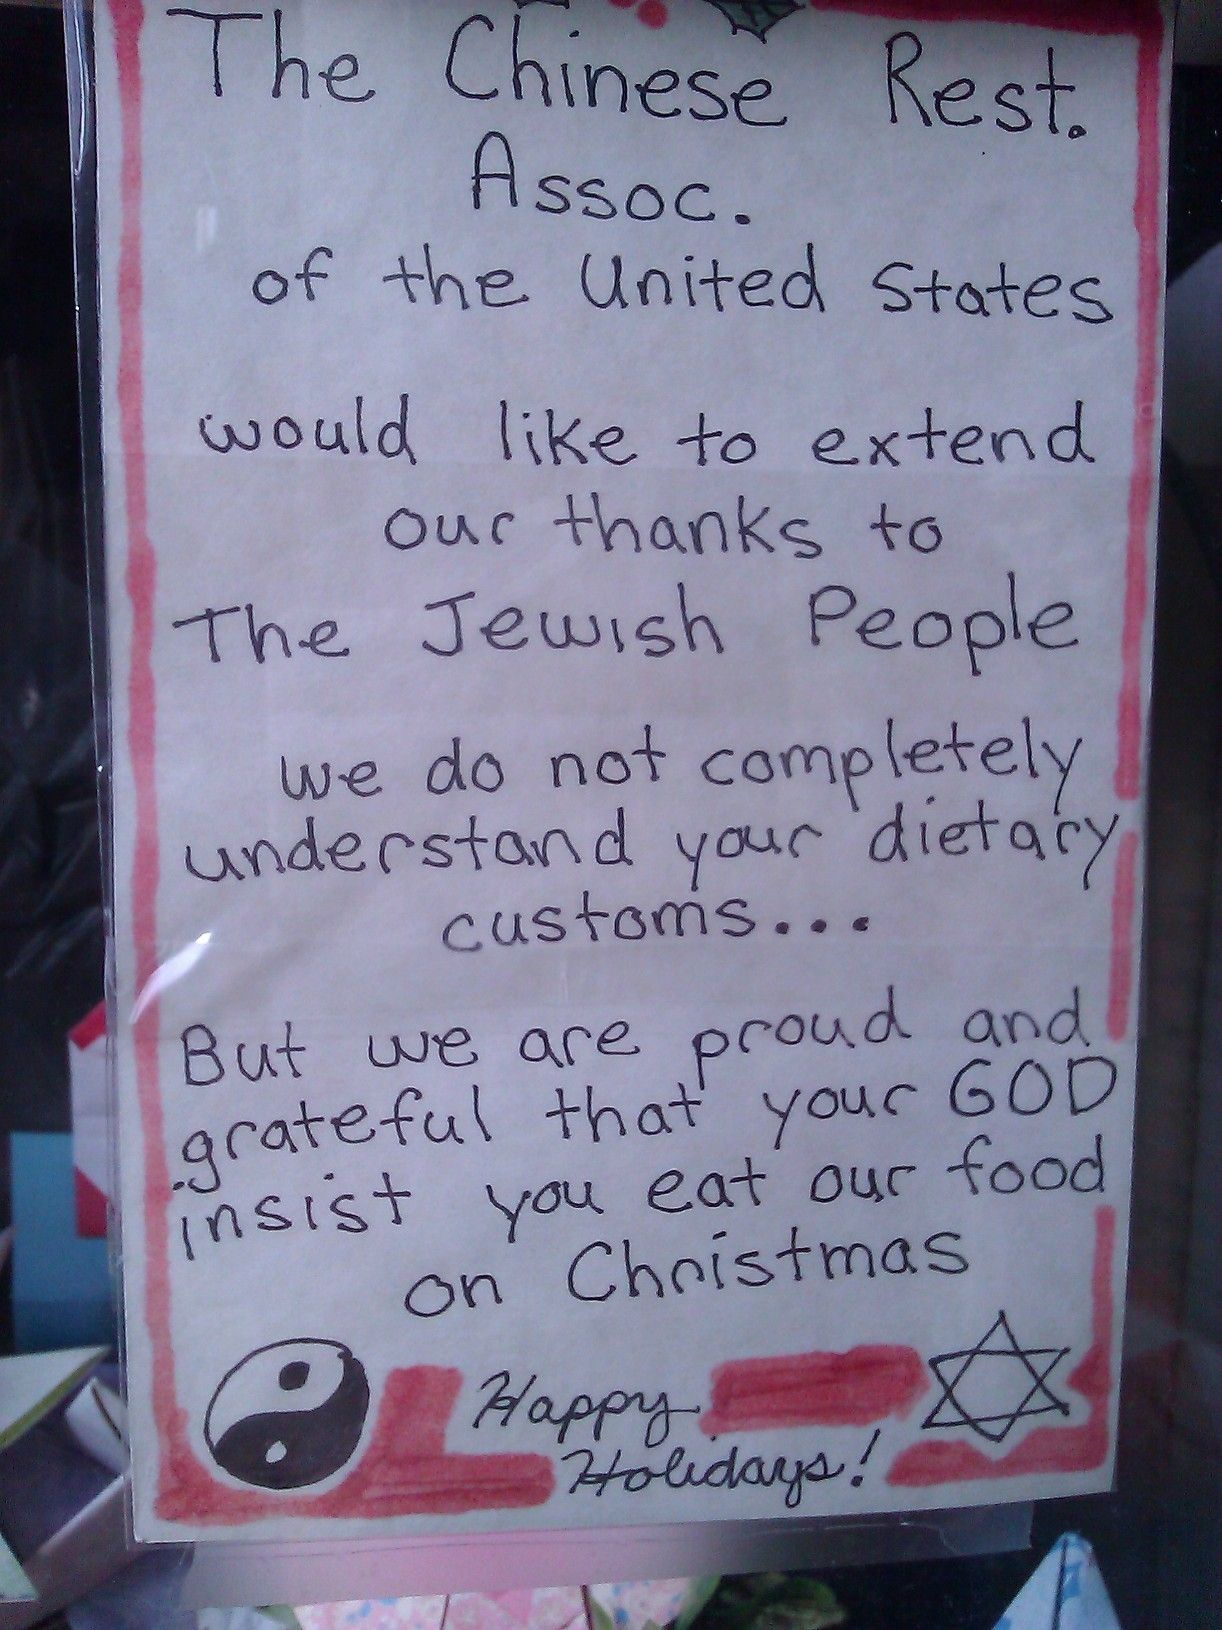 Yet every Chinese restaurant and movie theater is PACKED. | Hanukkah ...